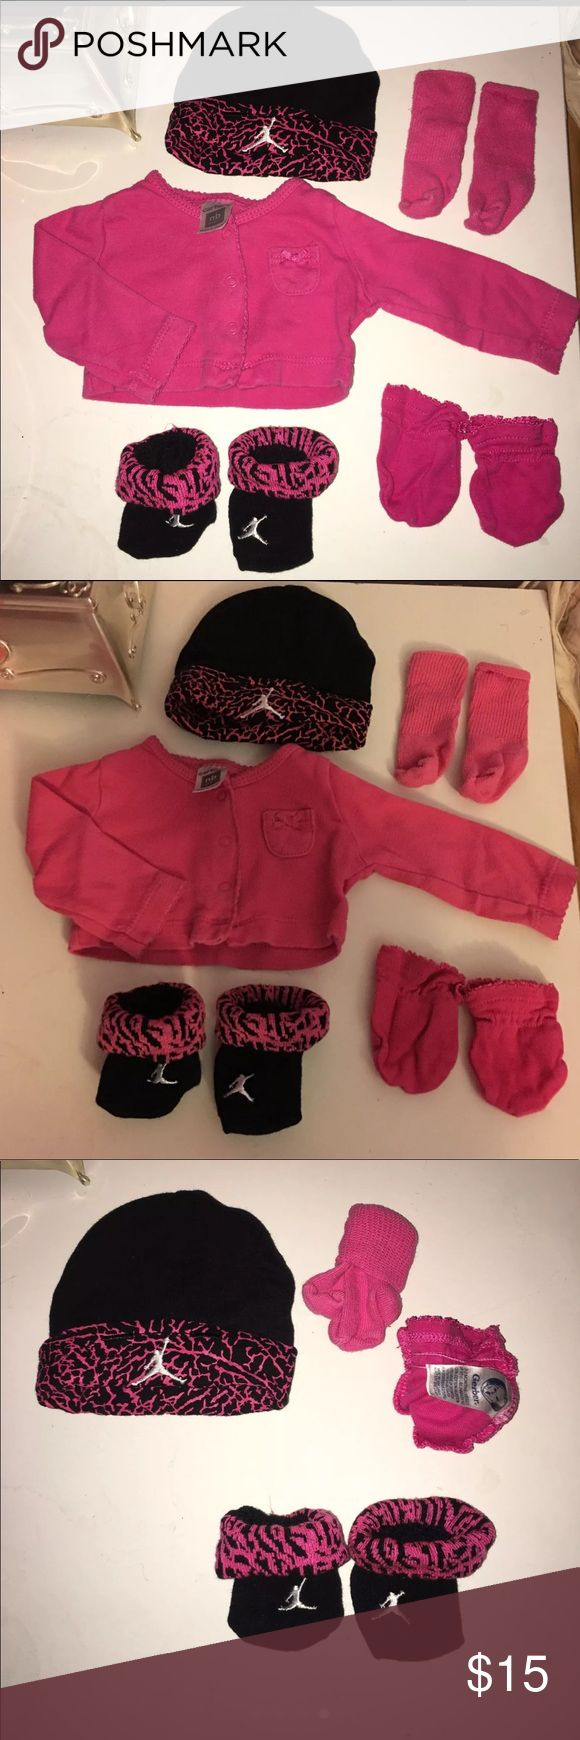 Newborn girl bundle VERY CUTE AND VERY PINK BABY GIRL ITEMS!  -Jordan hat and socks (NWOT), bought them and forgot about them in the diaper bag (0-6 mo)  -little pink sweater (NB)   -pink mittens (0-3 mo)  -pink socks (NB) (GUC)  Brands:  Carter's, Gerber, Jordan Carter's Accessories